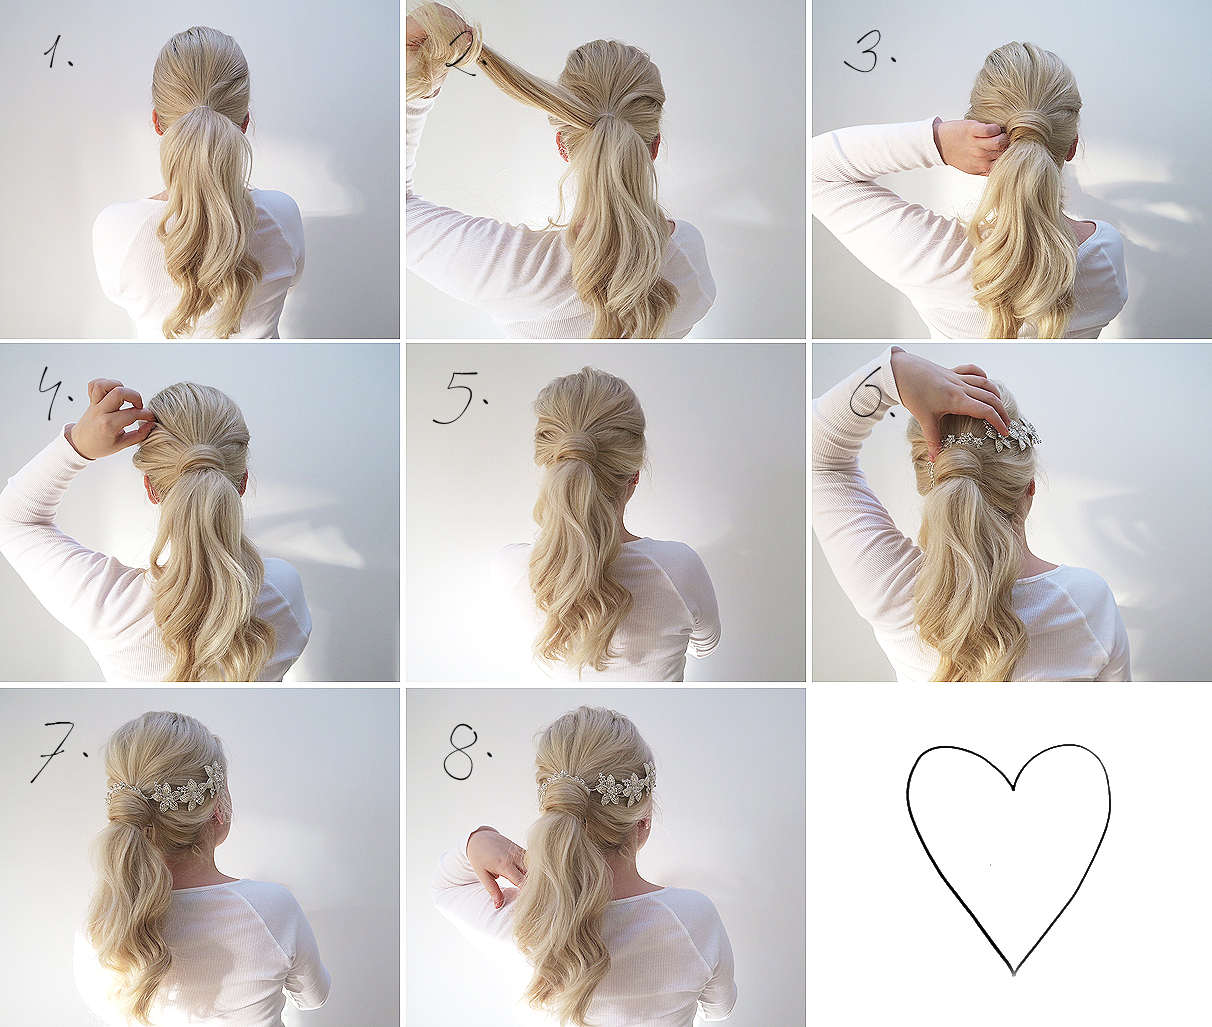 Magnificent Two Simple Hair Tutorials Perfect For A Wedding Grace Amp Braver Short Hairstyles For Black Women Fulllsitofus